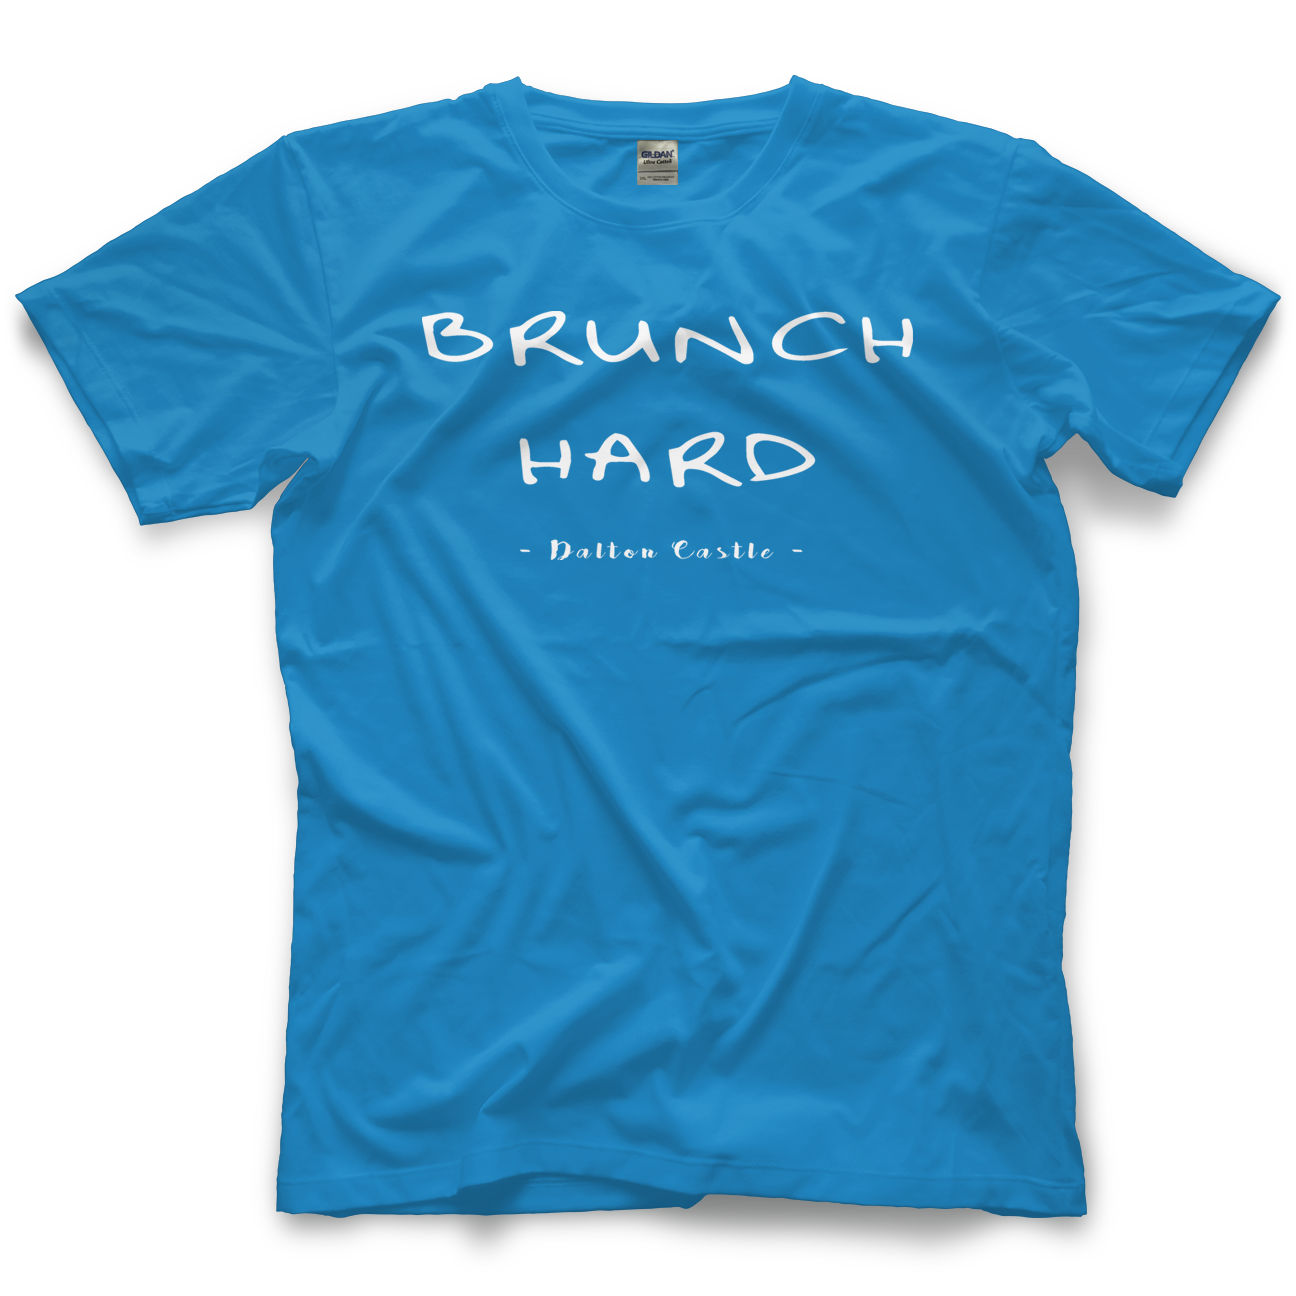 Brunch Hard